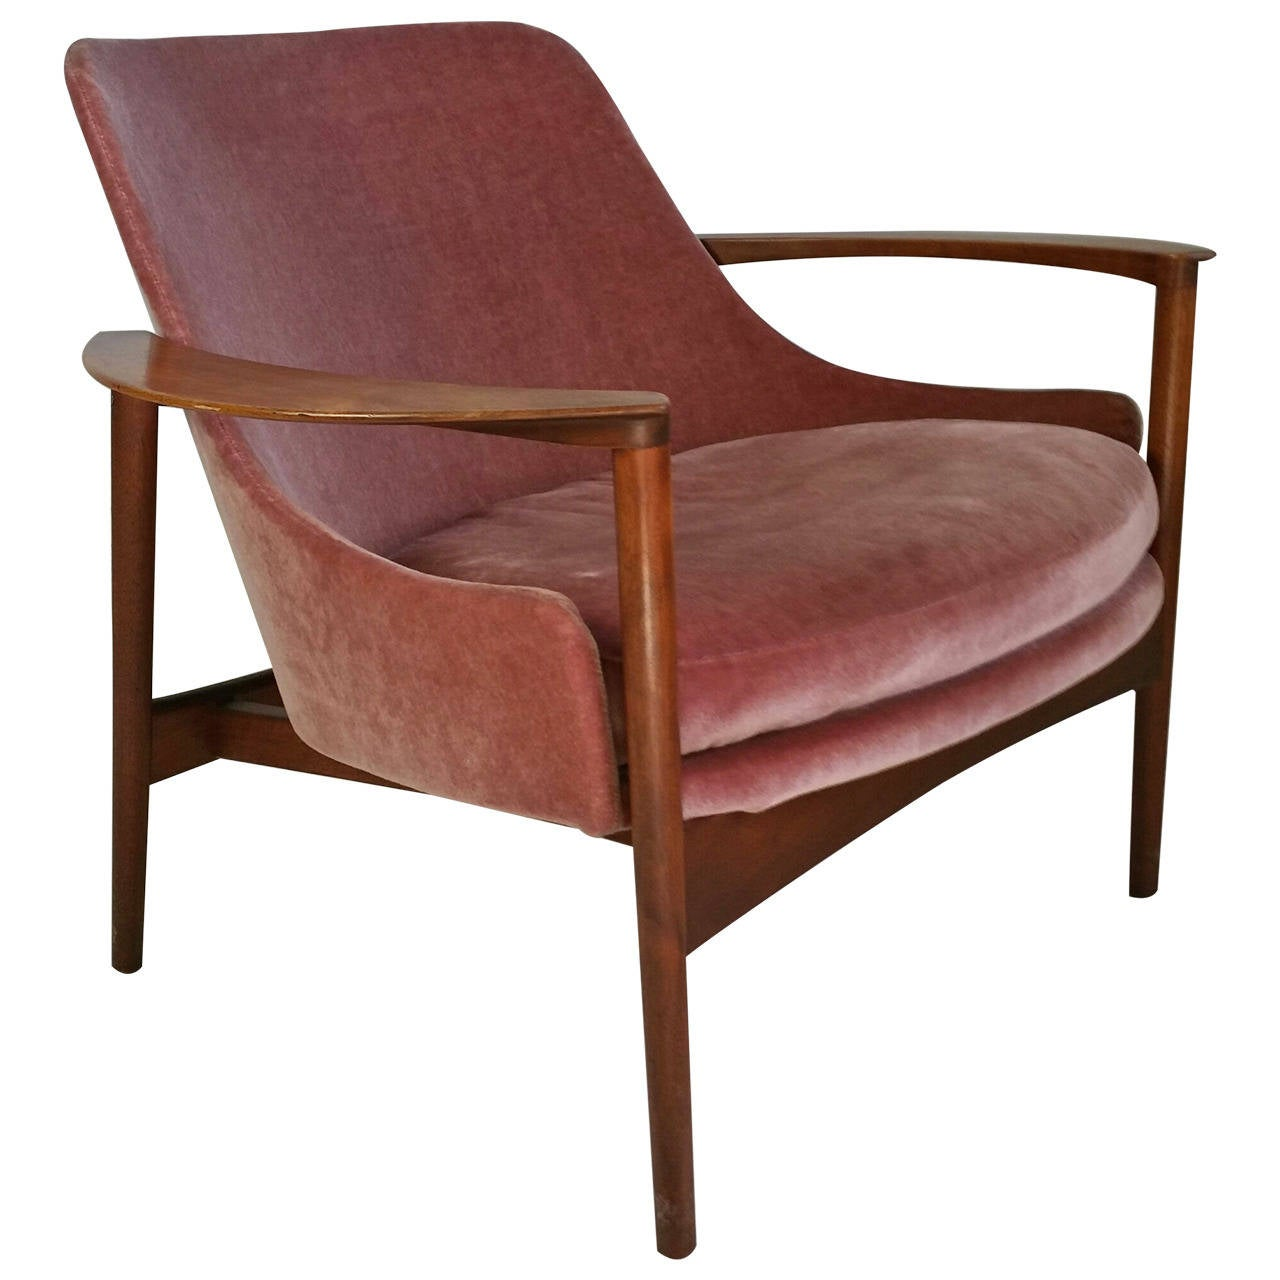 Selig Lounge Chair Lounge Chair By Kofod Larsen For Selig Denmark At 1stdibs